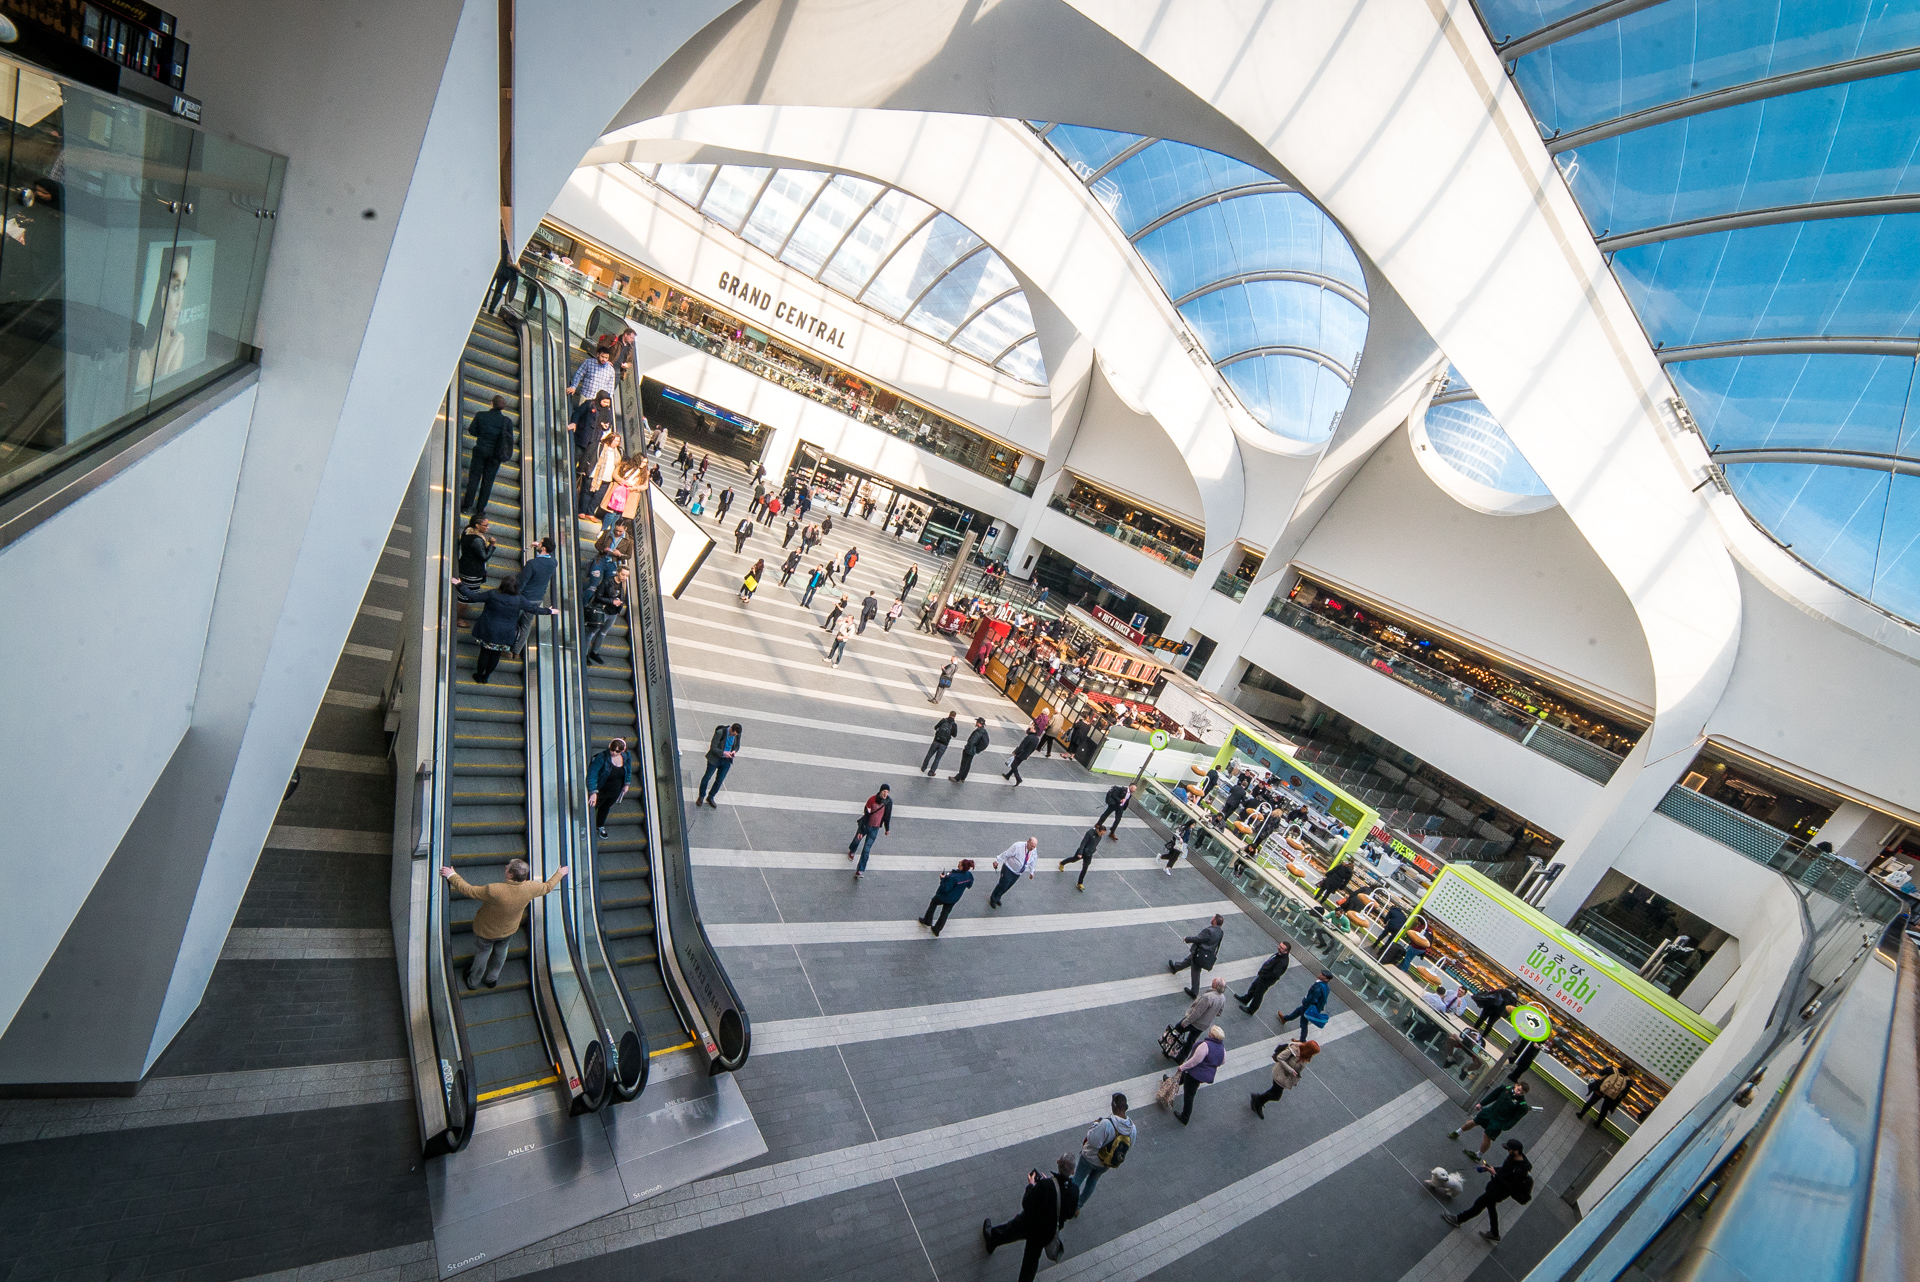 Birmingham's Grand Central shopping mall at New Street Train Station